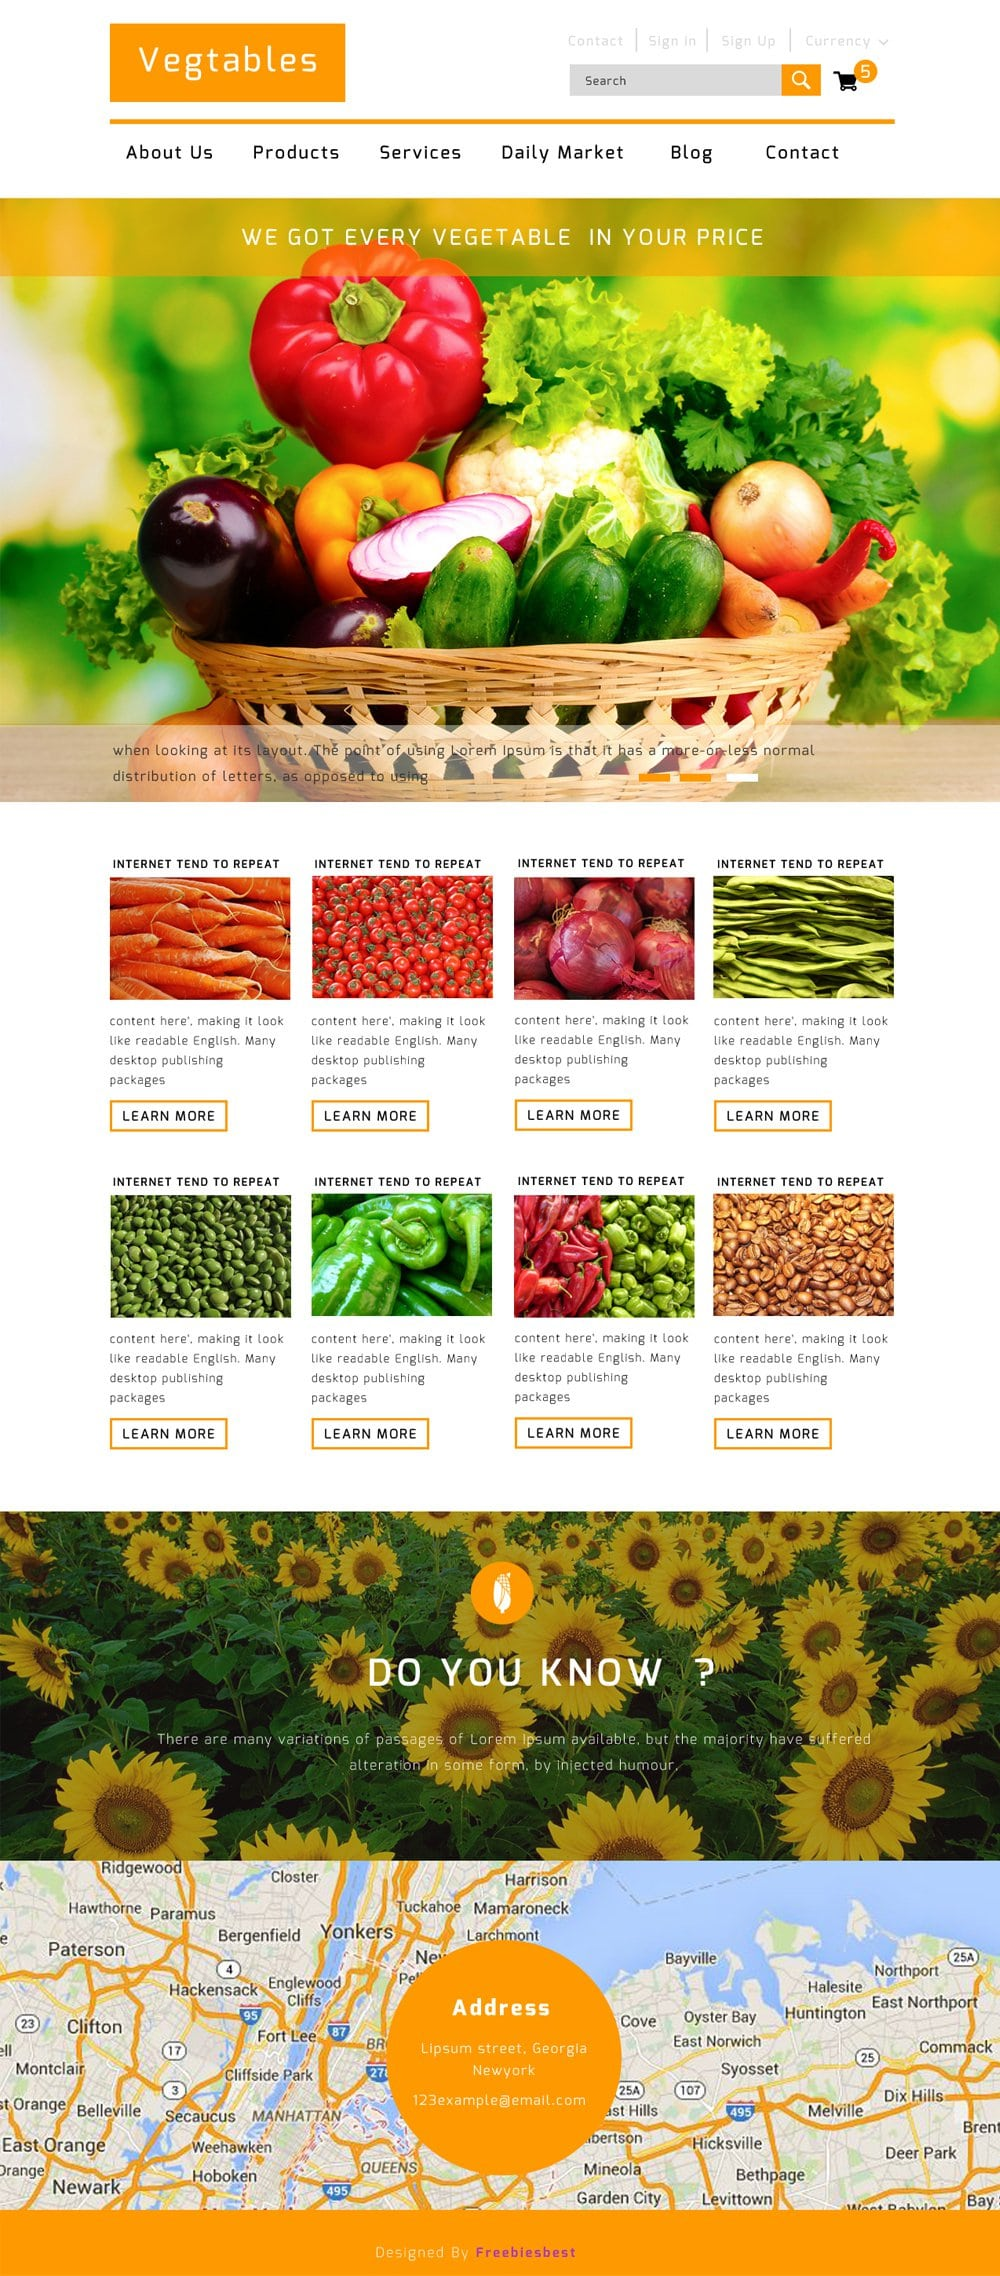 Vegetables-Free-Flat-E-commerce-Web-Template-PSD